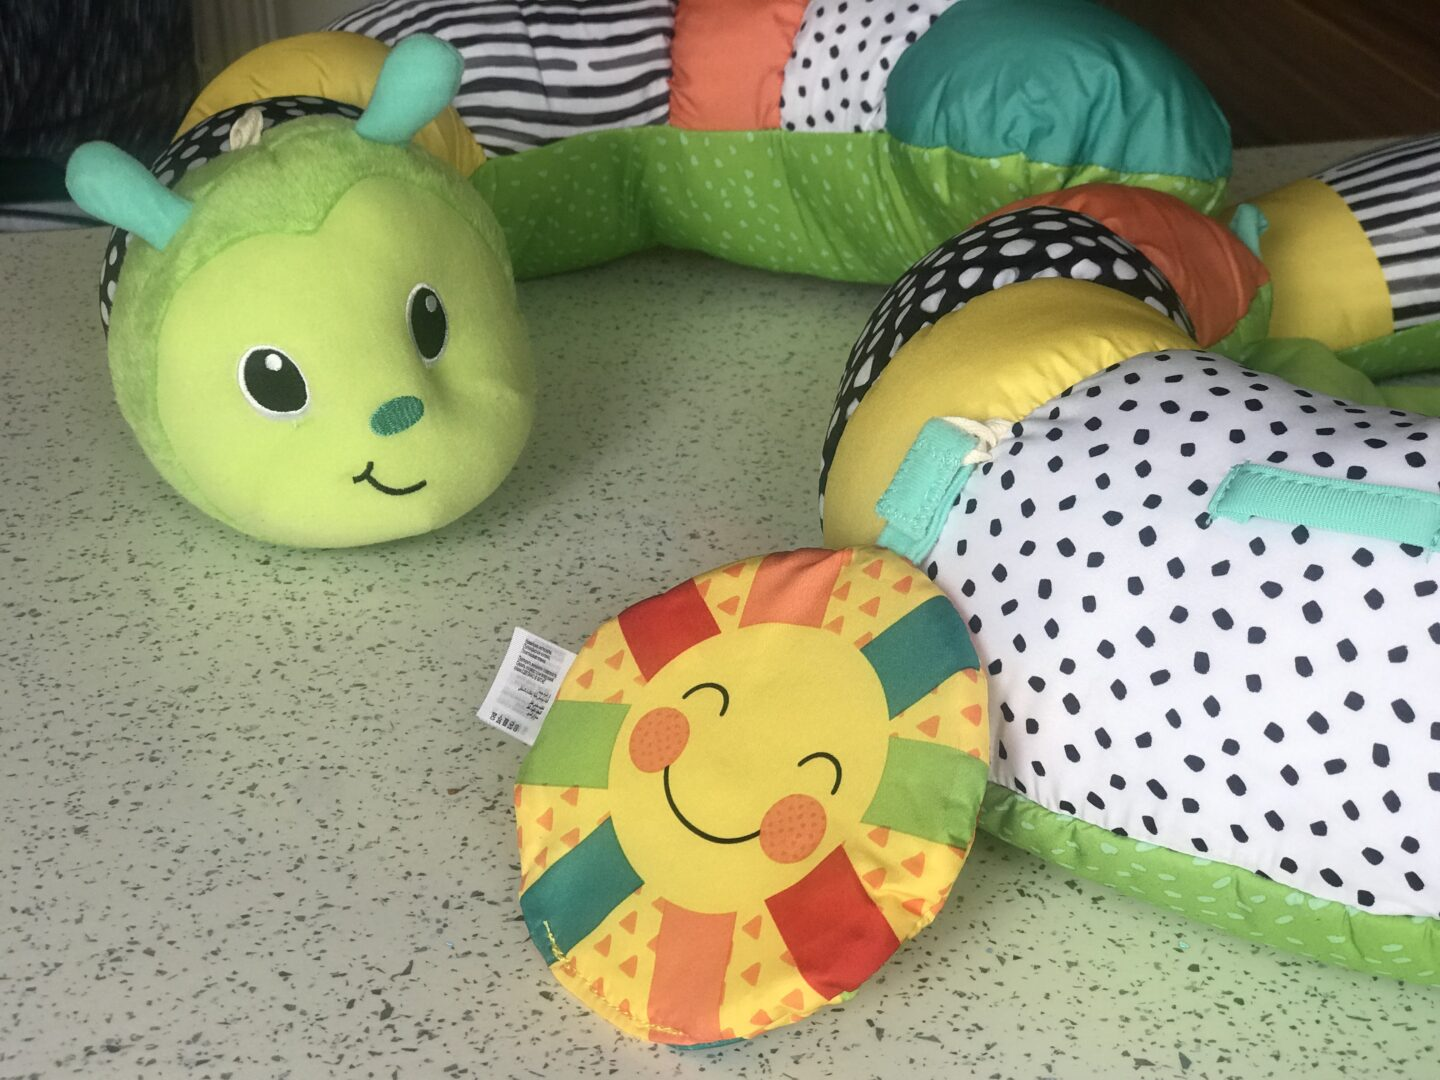 A close up of the Infantino Prop-a-Pillar tummy time support showing the crinkled sun and caterpillar's face